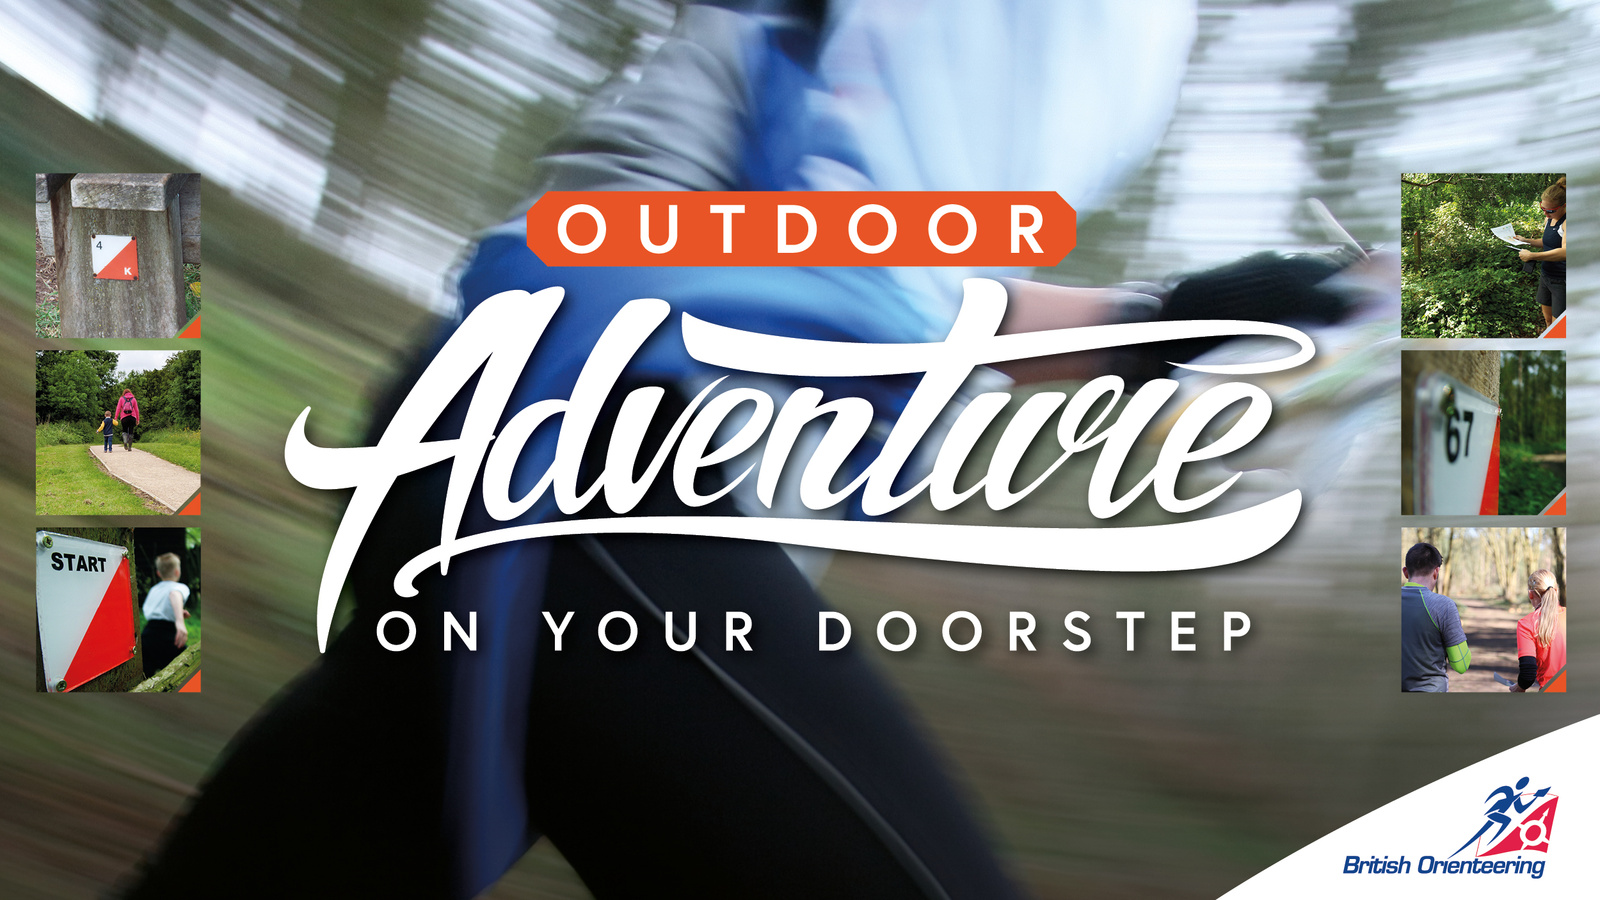 Outdoor Adventure Awaits in a Socially Distanced Way